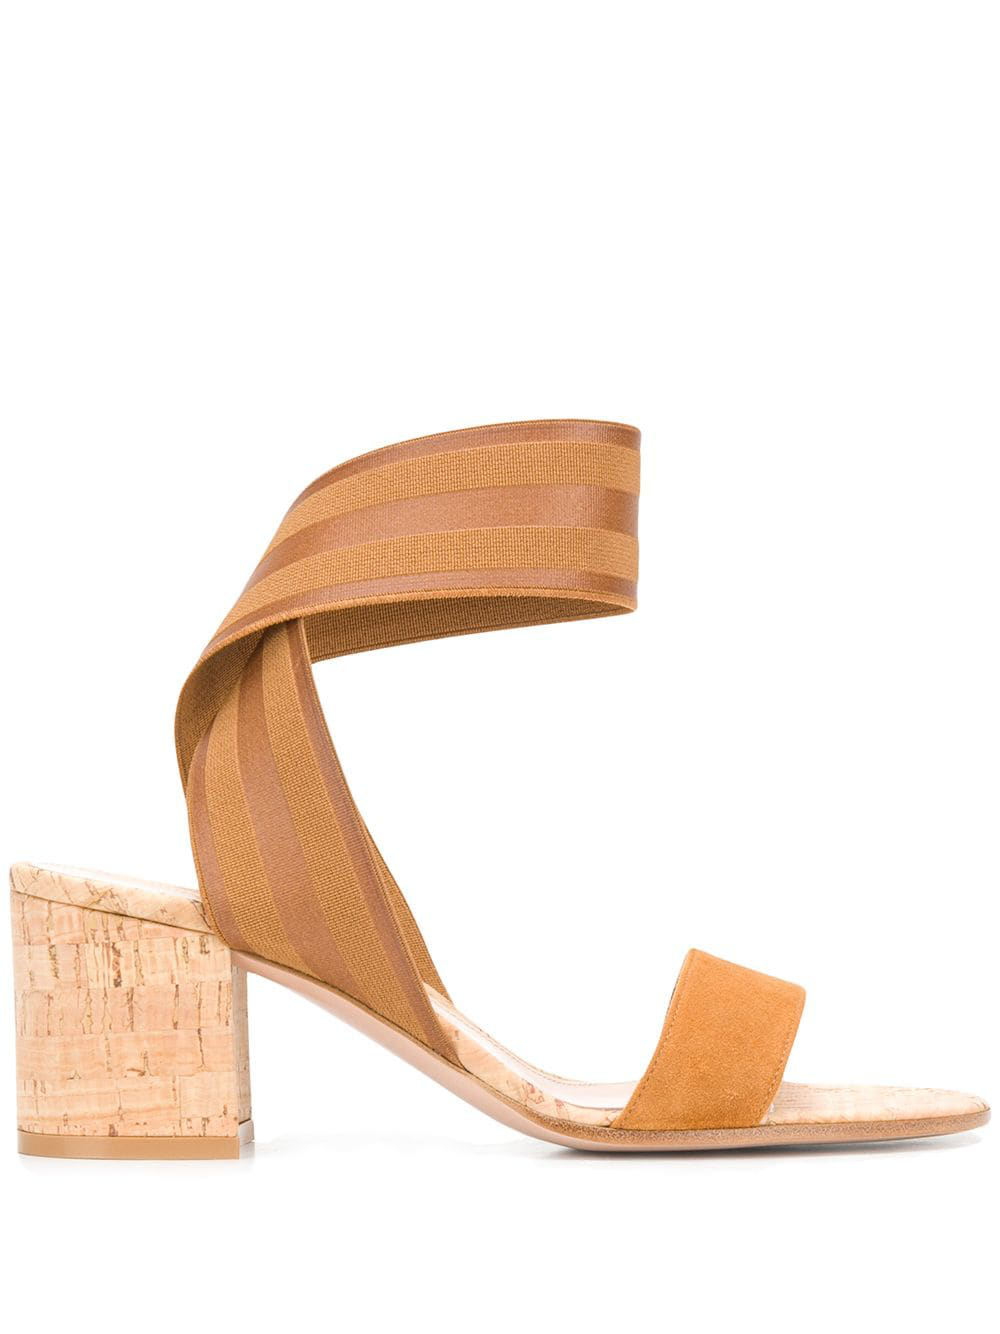 691d5fbecd6d Gianvito Rossi Hailee 60 Sandals - Neutrals